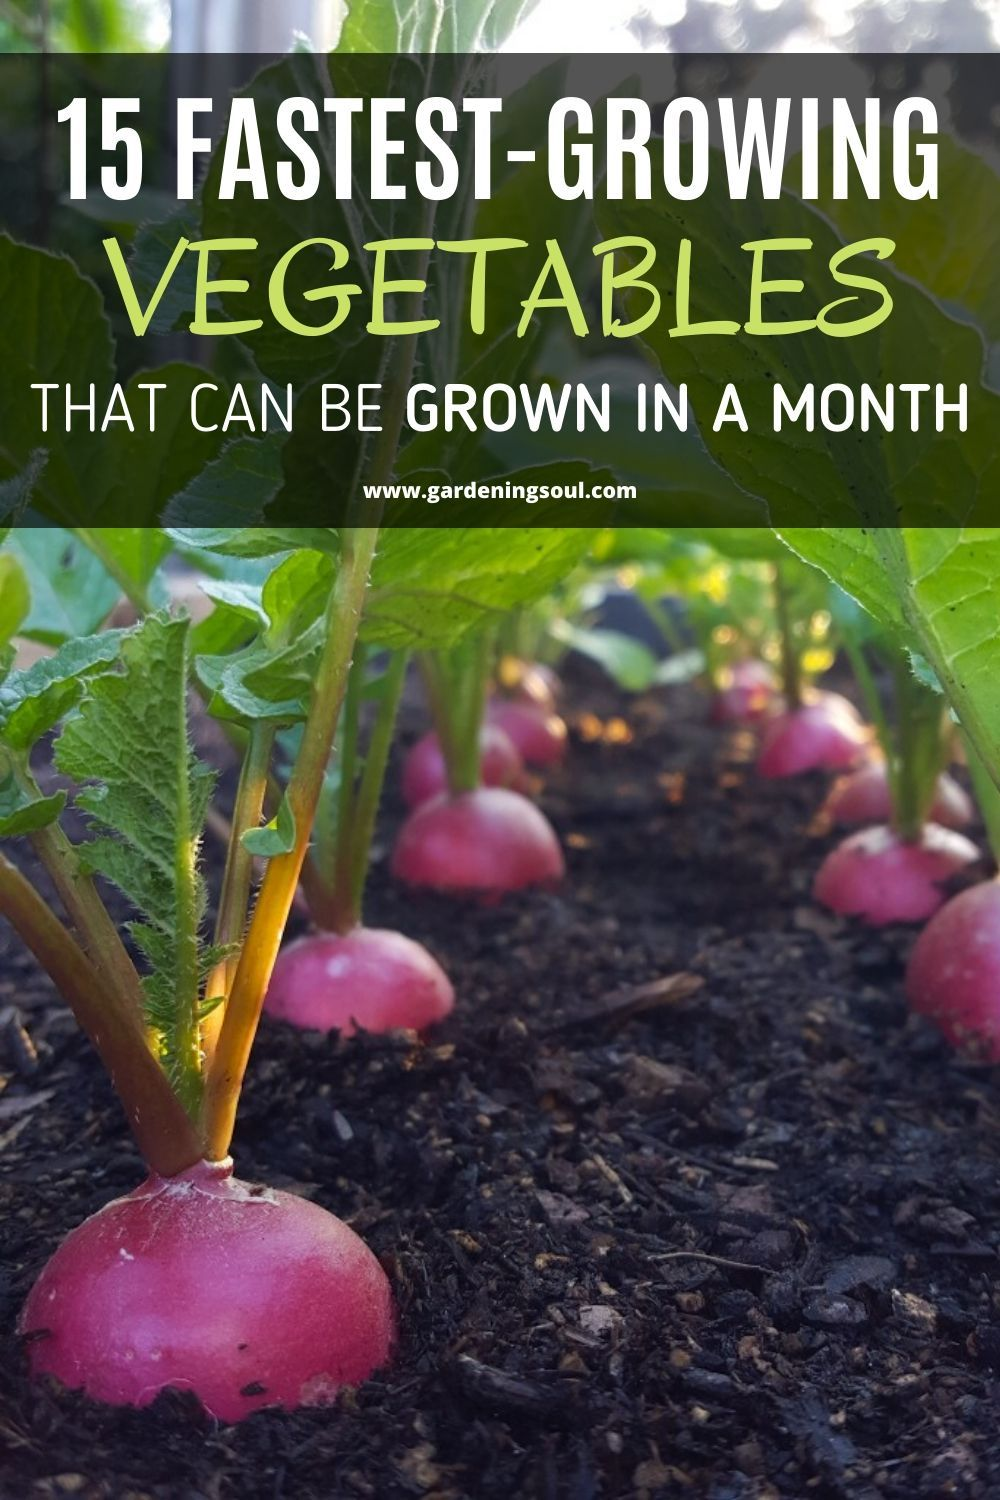 15 FastestGrowing Vegetables That Can be Grown in a Month